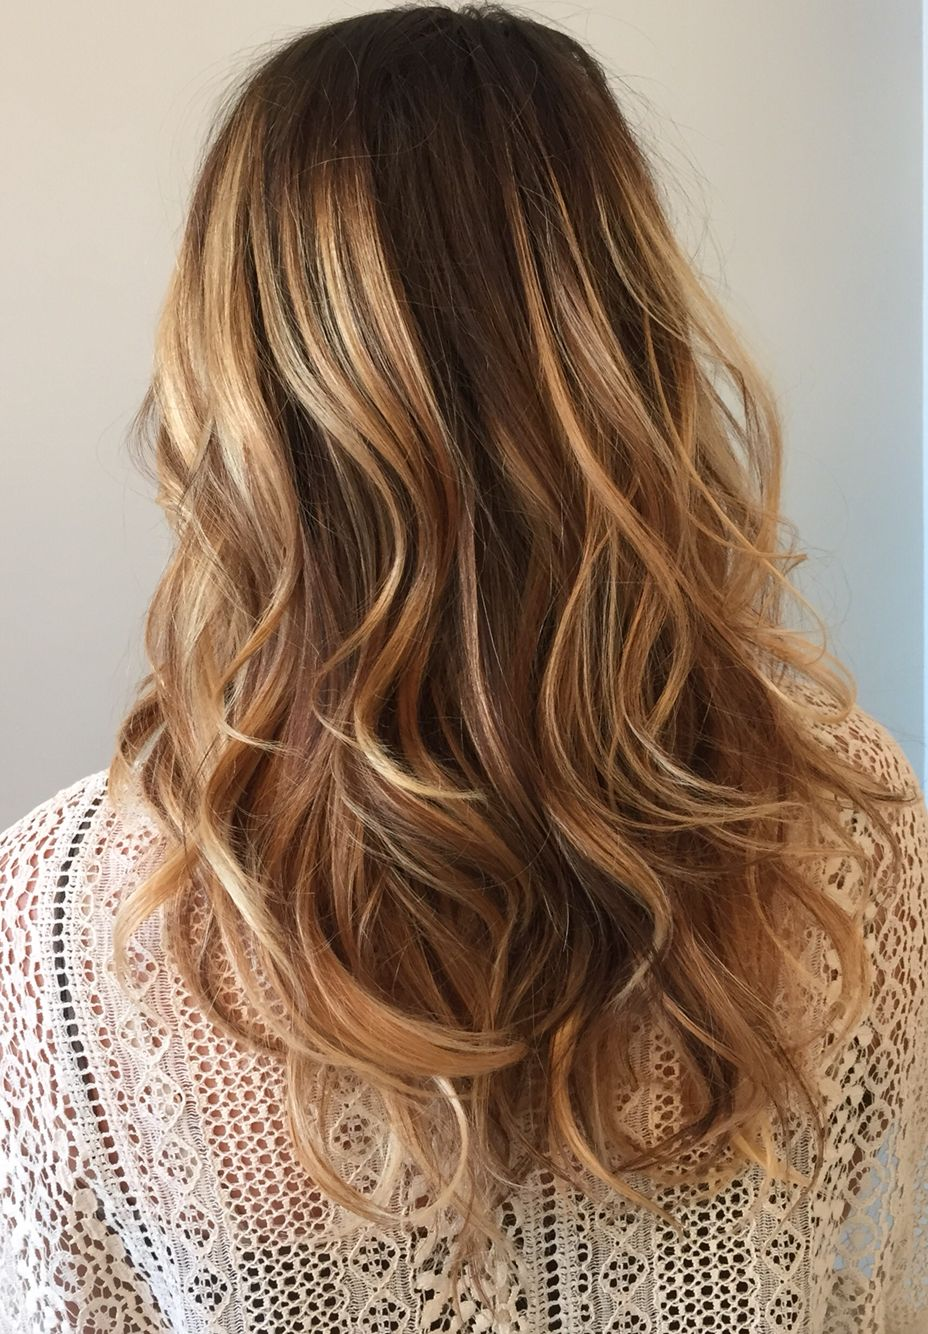 Rooty Warm Balayage Blonde On Brunette Hair Portland Hair By Holly At Blueprint Modern Hair Follow On Ig Hollylike Sombre Hair Funky Hairstyles Hair Makeup